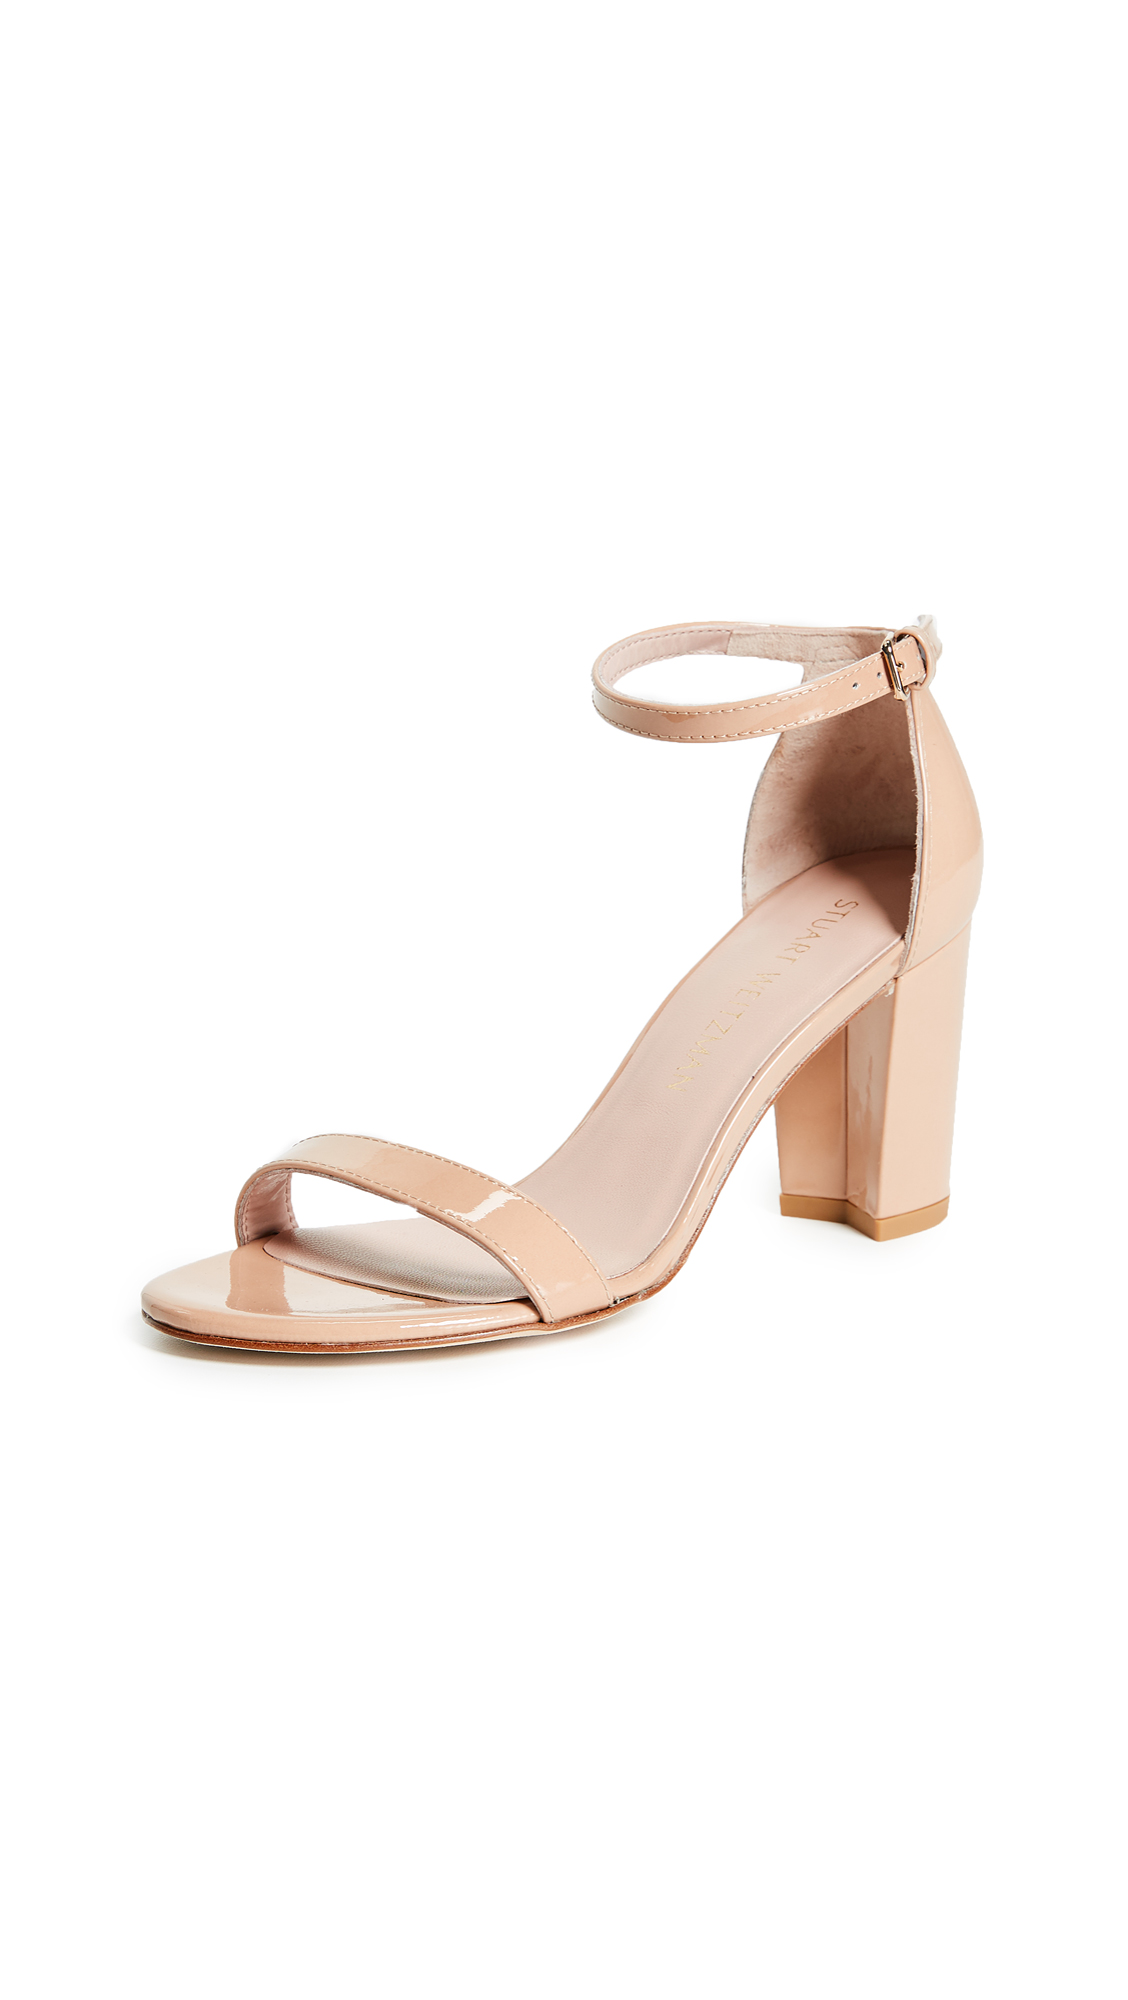 3a5e6211210 Nearlynude Nappa Leather Ankle Strap High Heel Sandals in Adobe